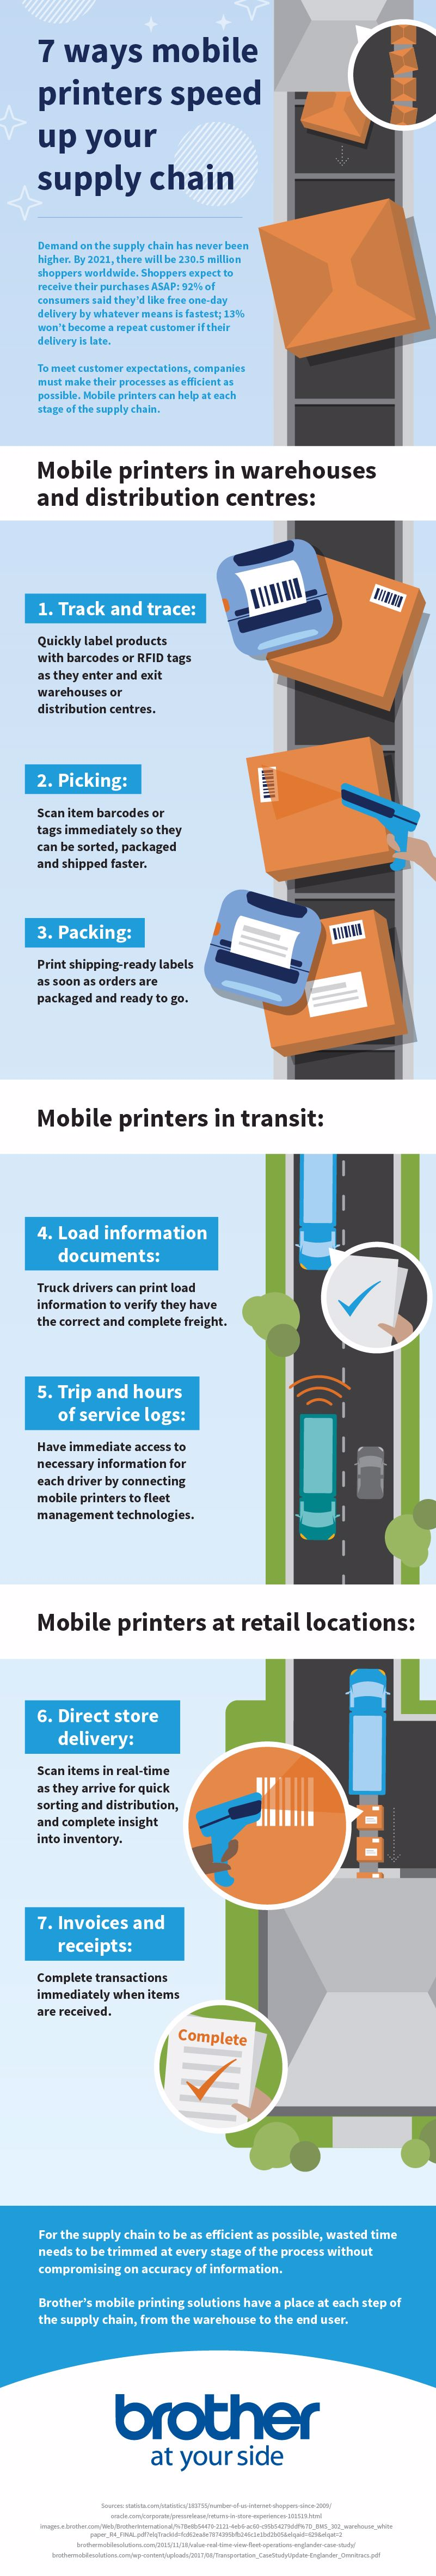 7 Ways Mobile Printers Speed Up Your Supply Chain